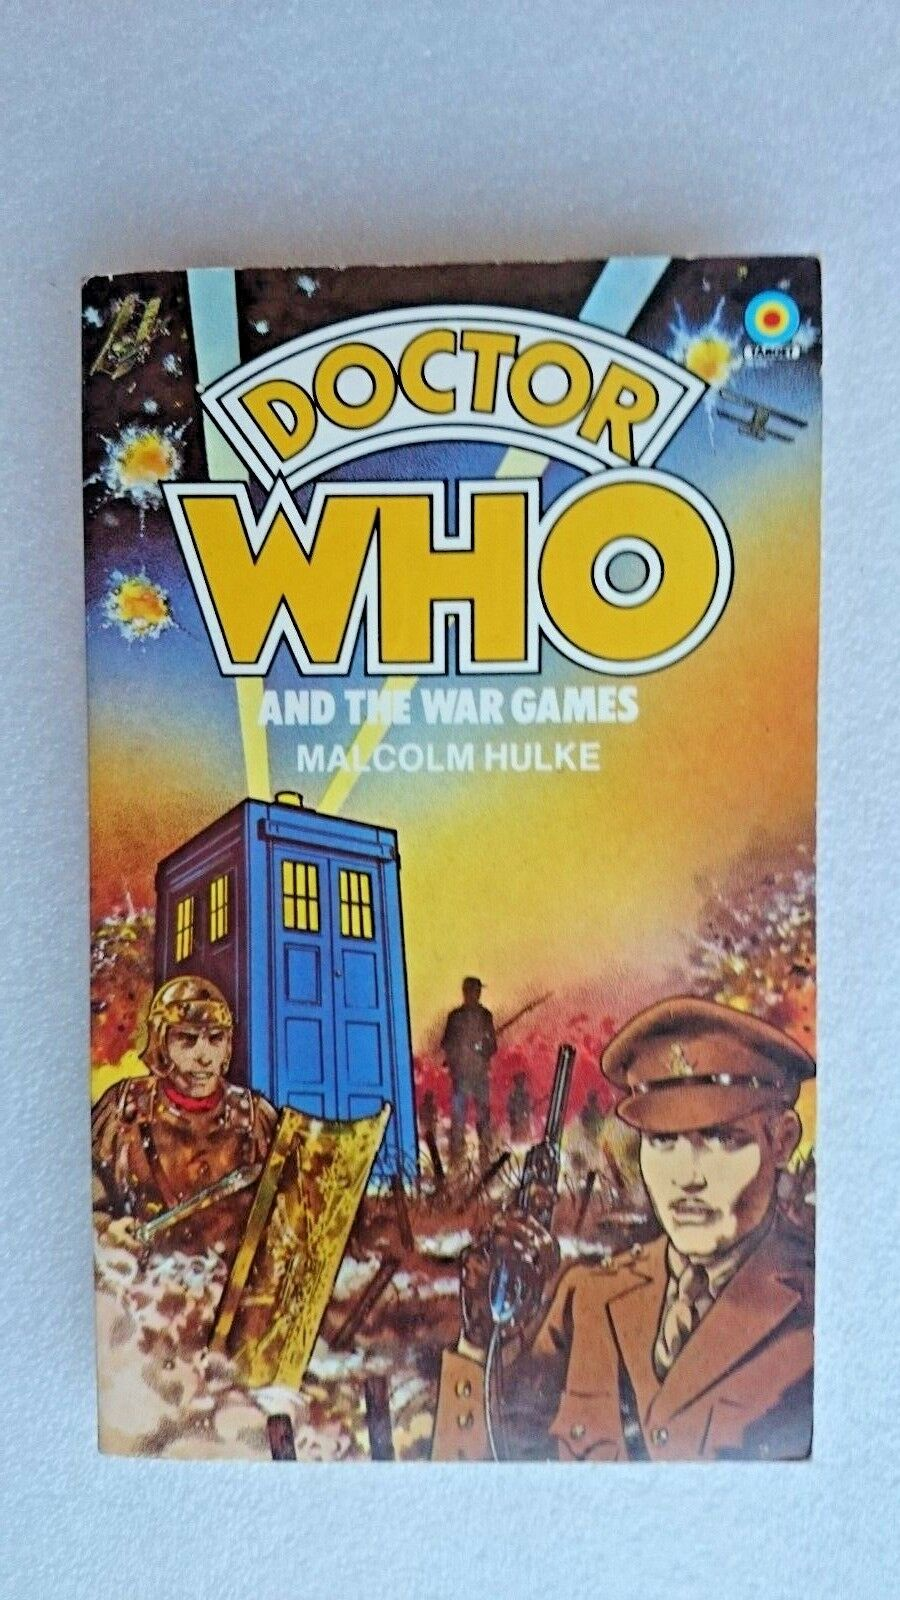 Doctor Who and the War Games by Malcolm Hulke (Paperback, 1984)